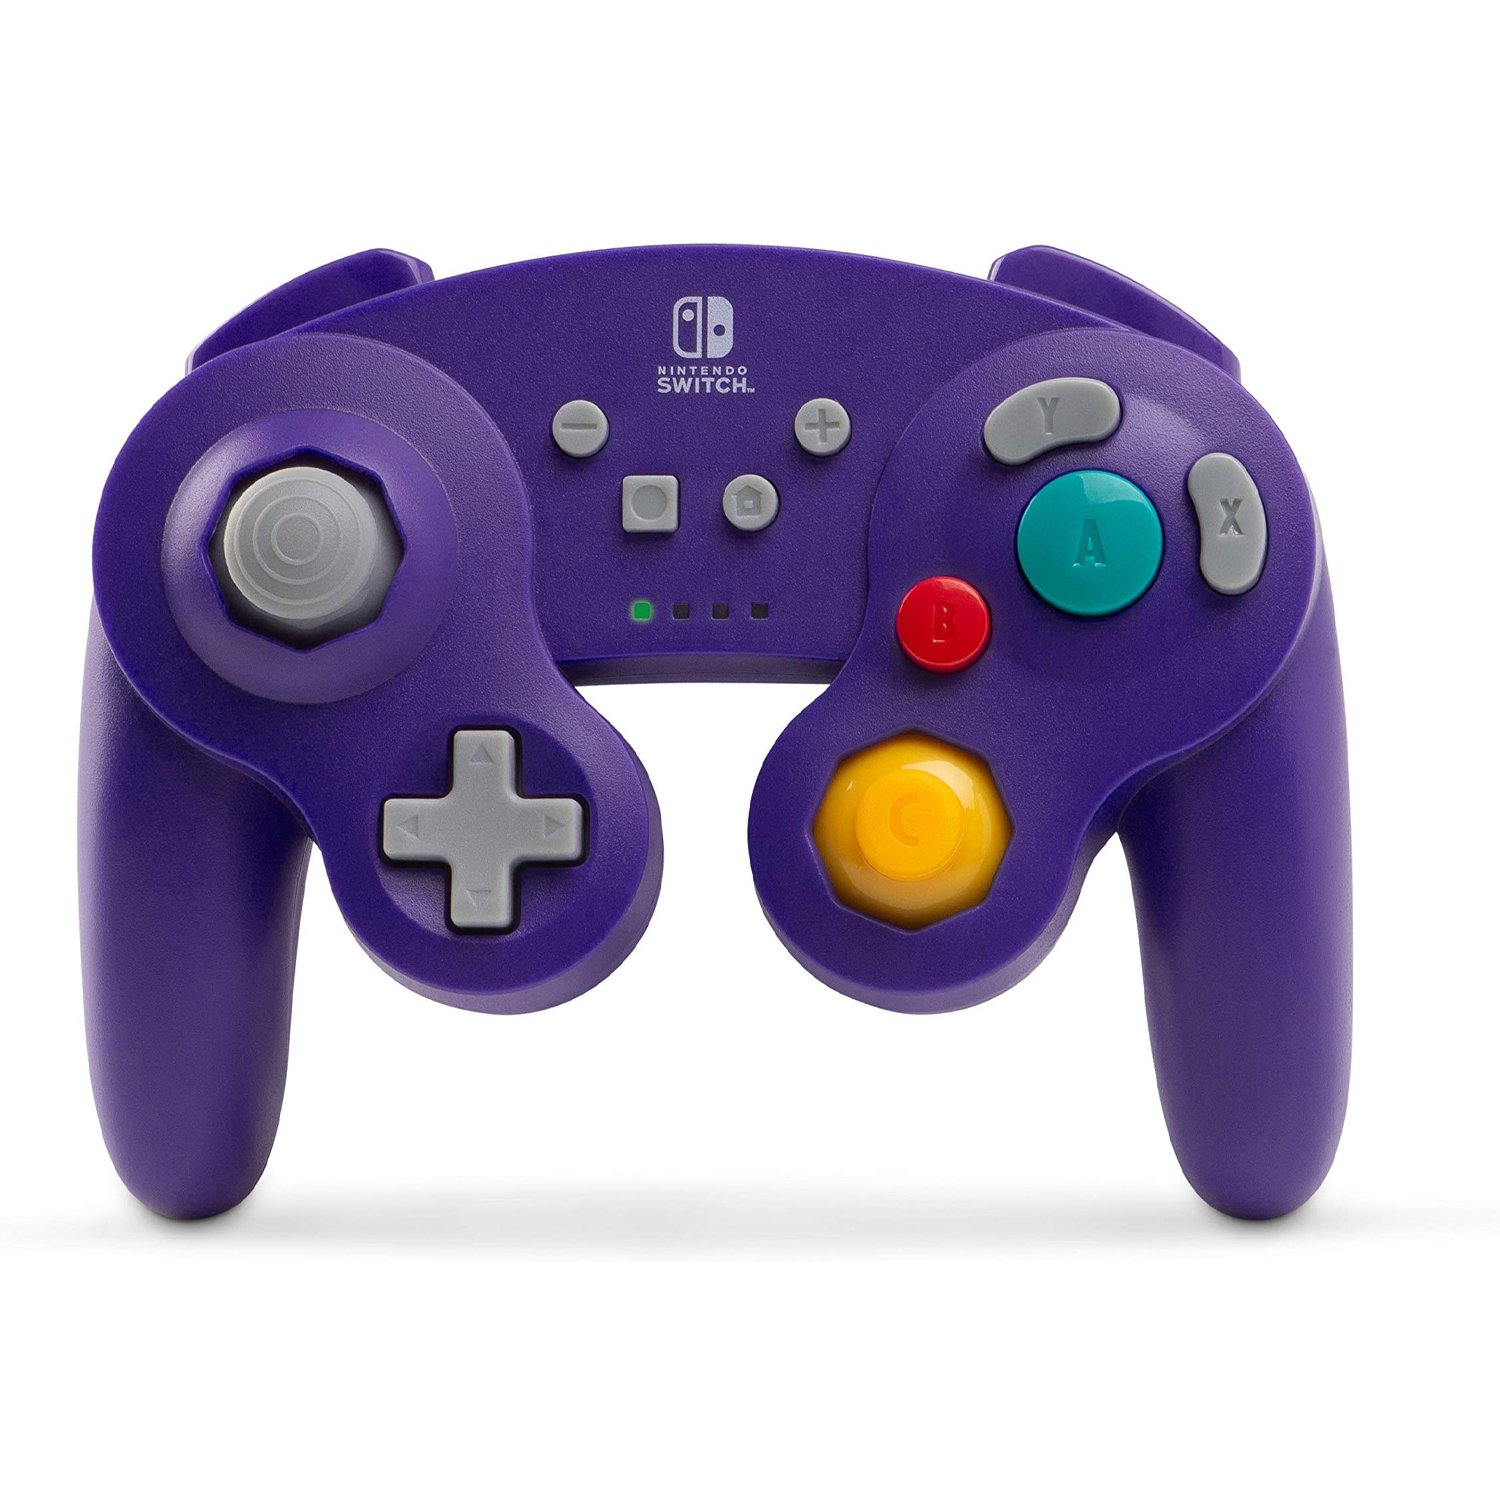 PowerA Wireless Controller for Nintendo Switch - GameCube Style: Purple (1507452-01)